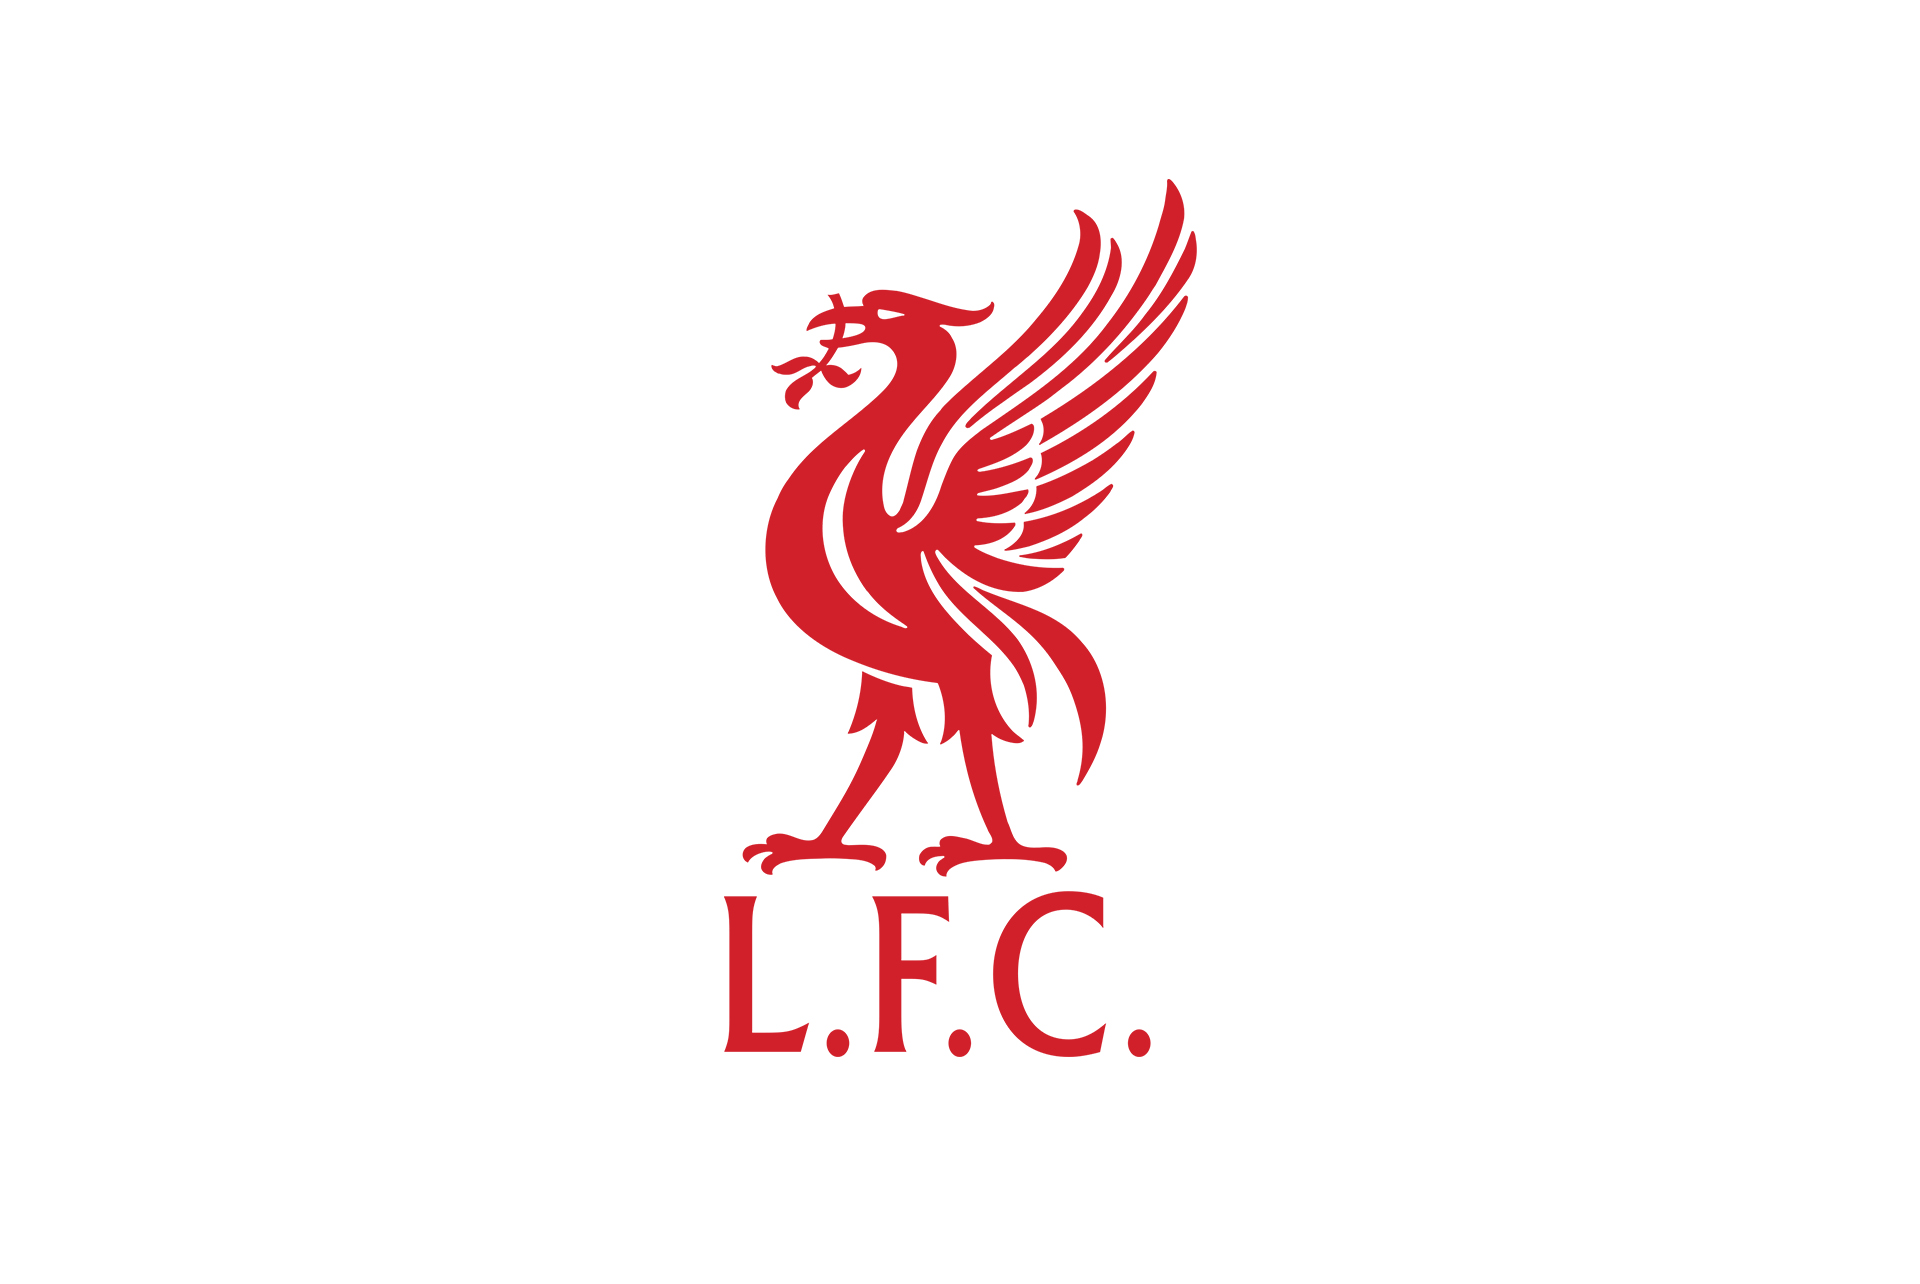 Best Football Logos Liverpool Fc